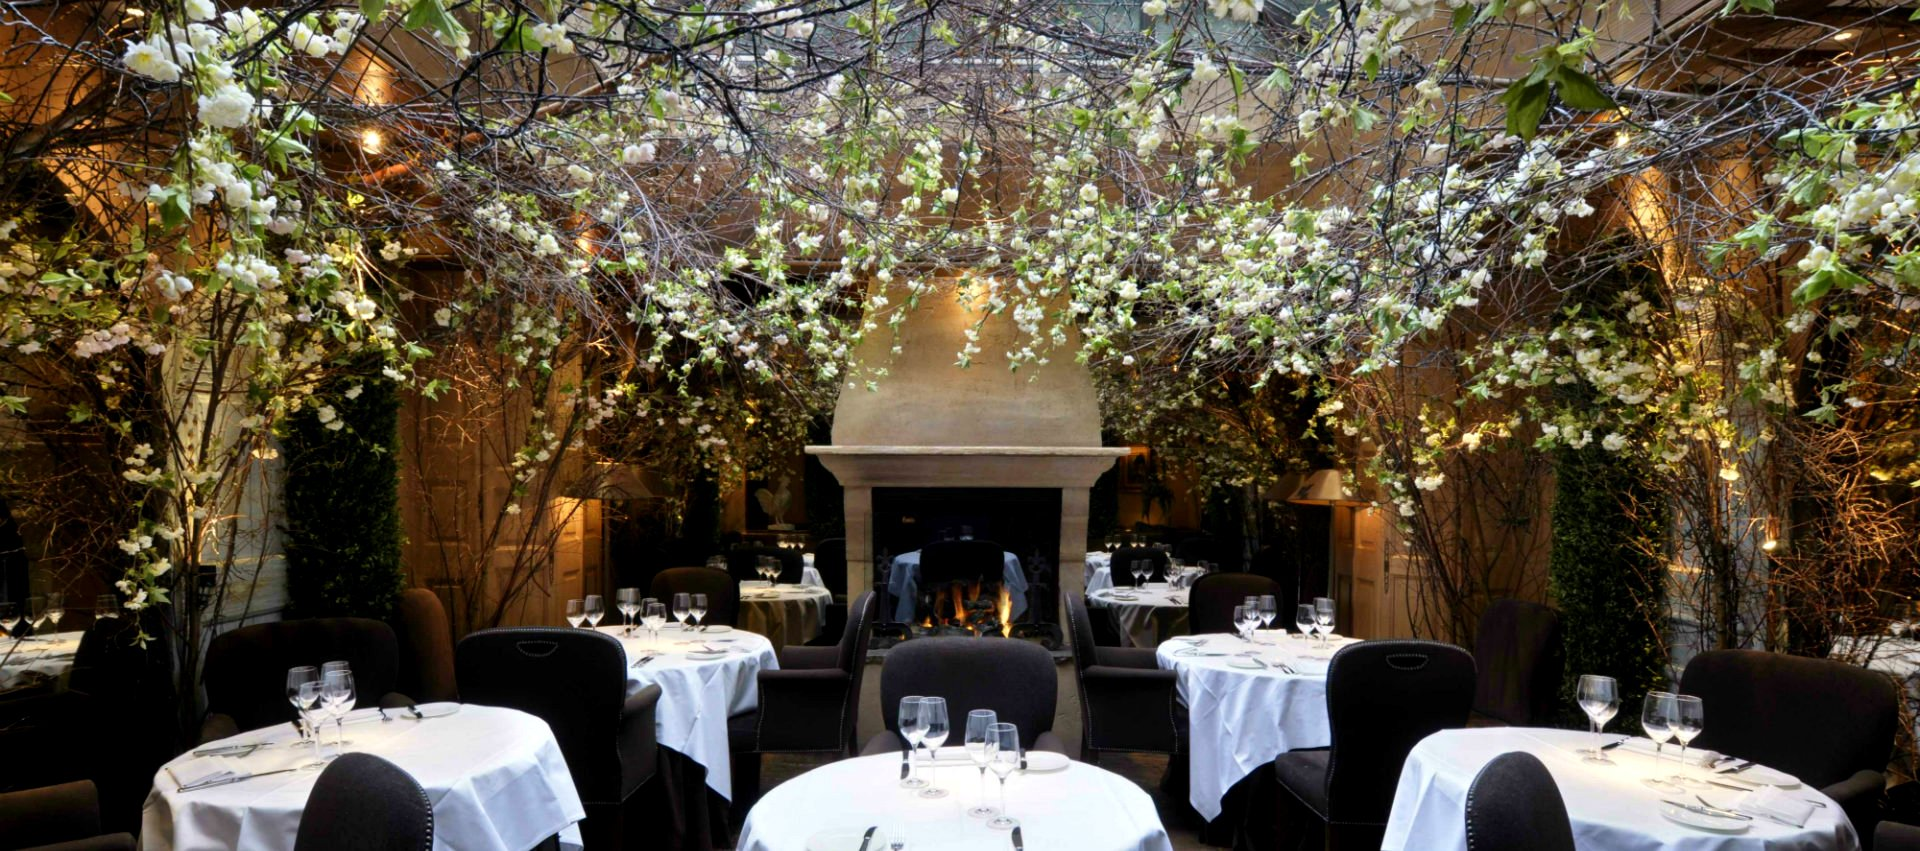 Clos Maggiore A Romantic Oasis In The Heart Of Covent Garden